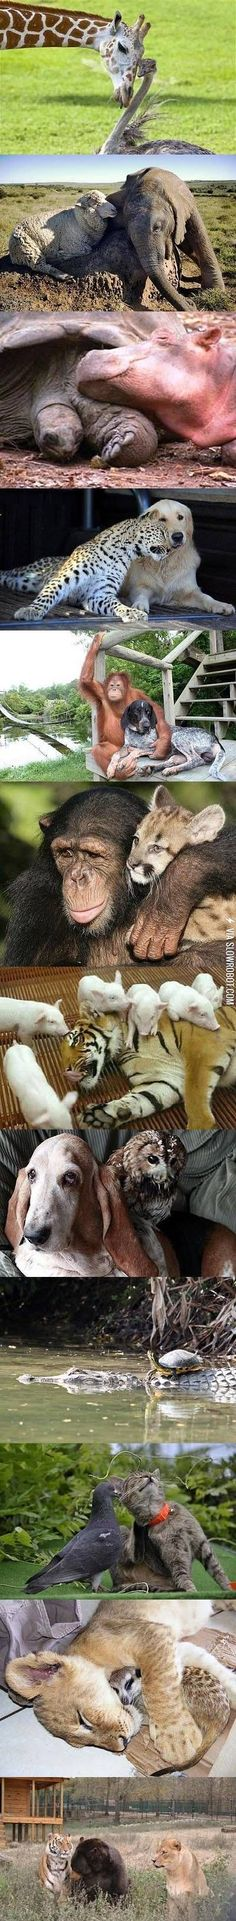 Animals and their friends.